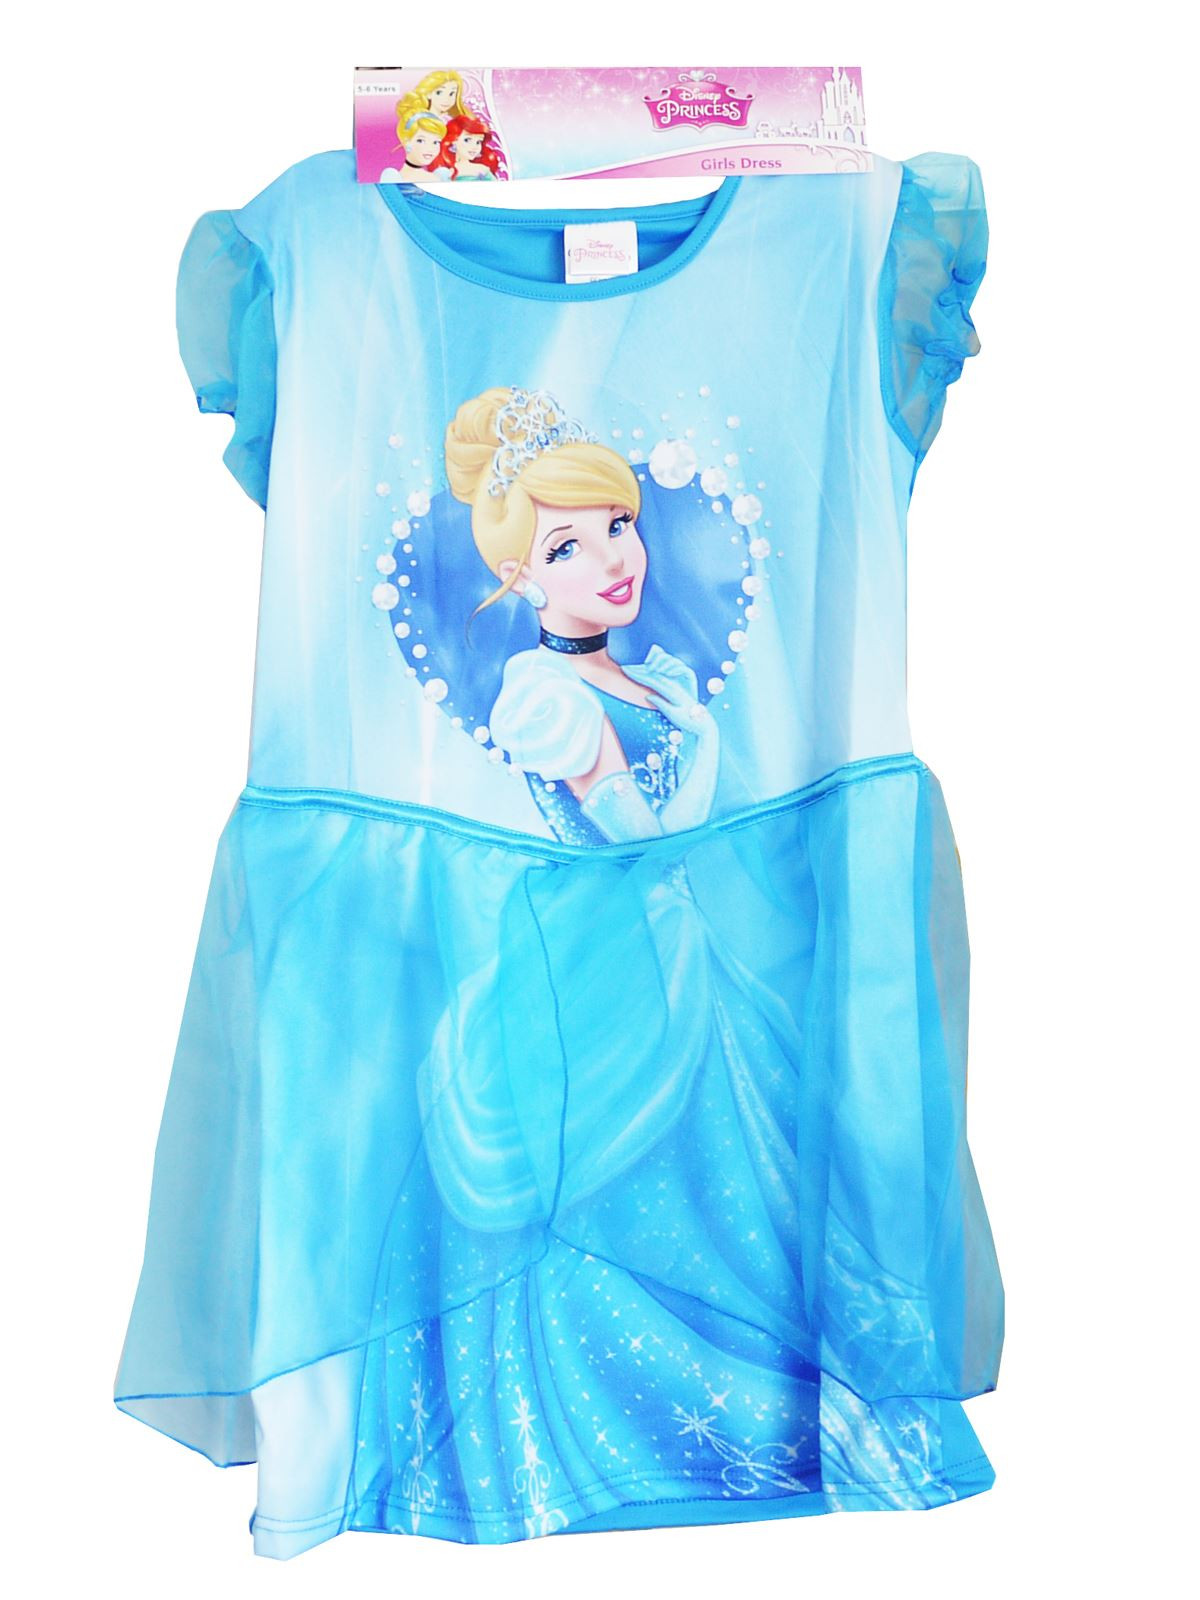 frozen dress up games Online. Welcome to the Frozen dress. Frozen is a American 3D computer-animated musical fantasy-comedy movie created by Walt Disney Computer animation Studios and launched by Walt Disney Pictures. It is the 53rd computer animated attribute in .